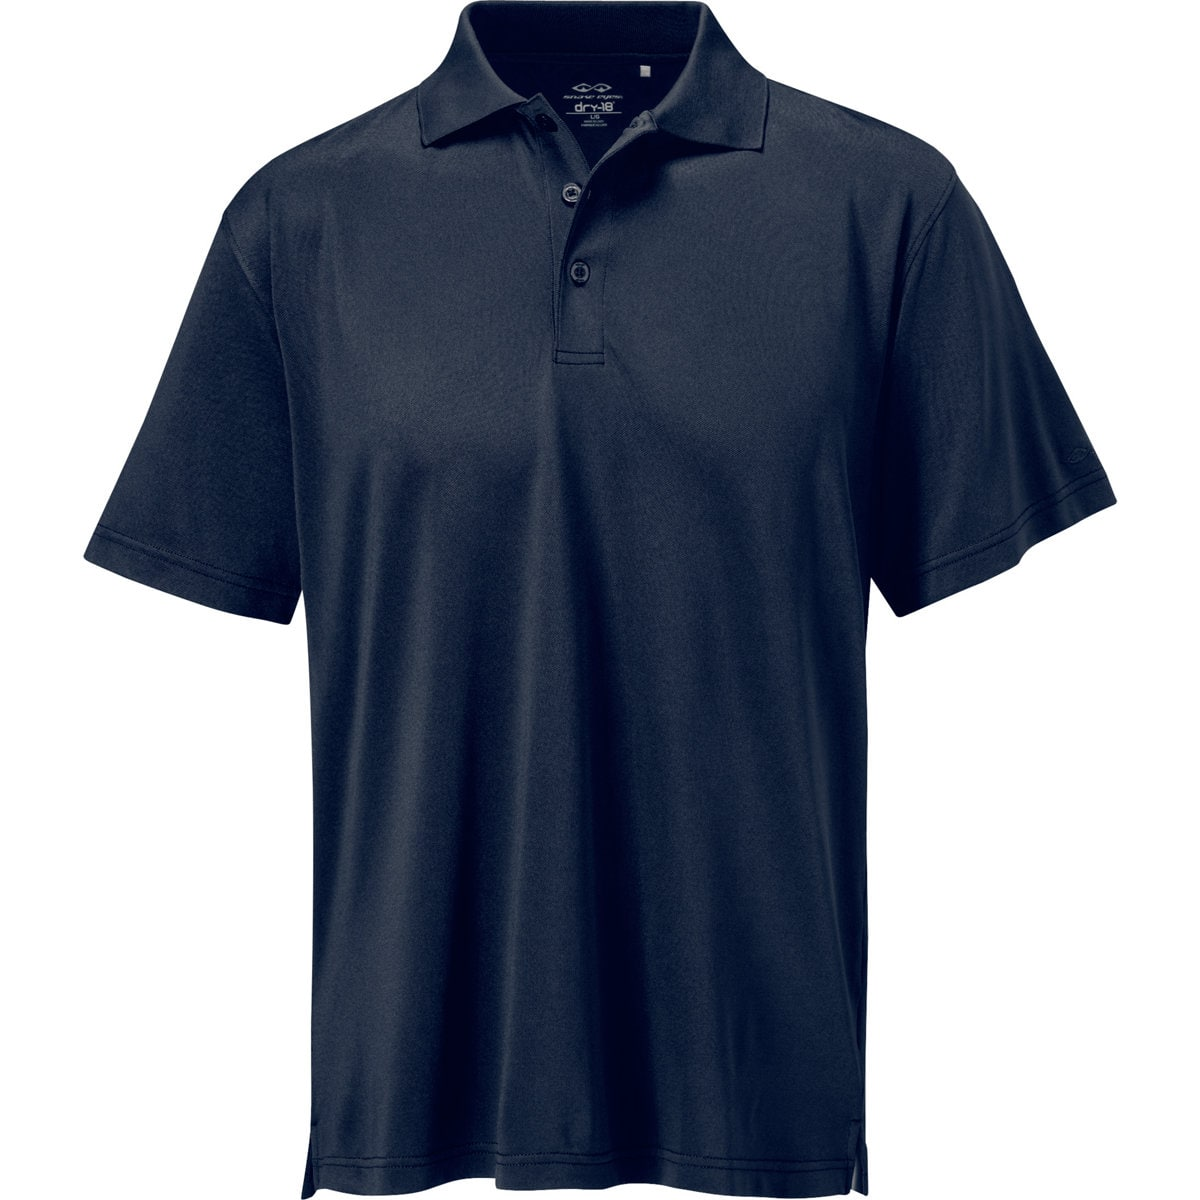 Golfsmith: Snake Eyes Pique Polos 2 for $20, Flat Front Pants $18.65, Flat Front Shorts $18.65 Plus Free Shipping